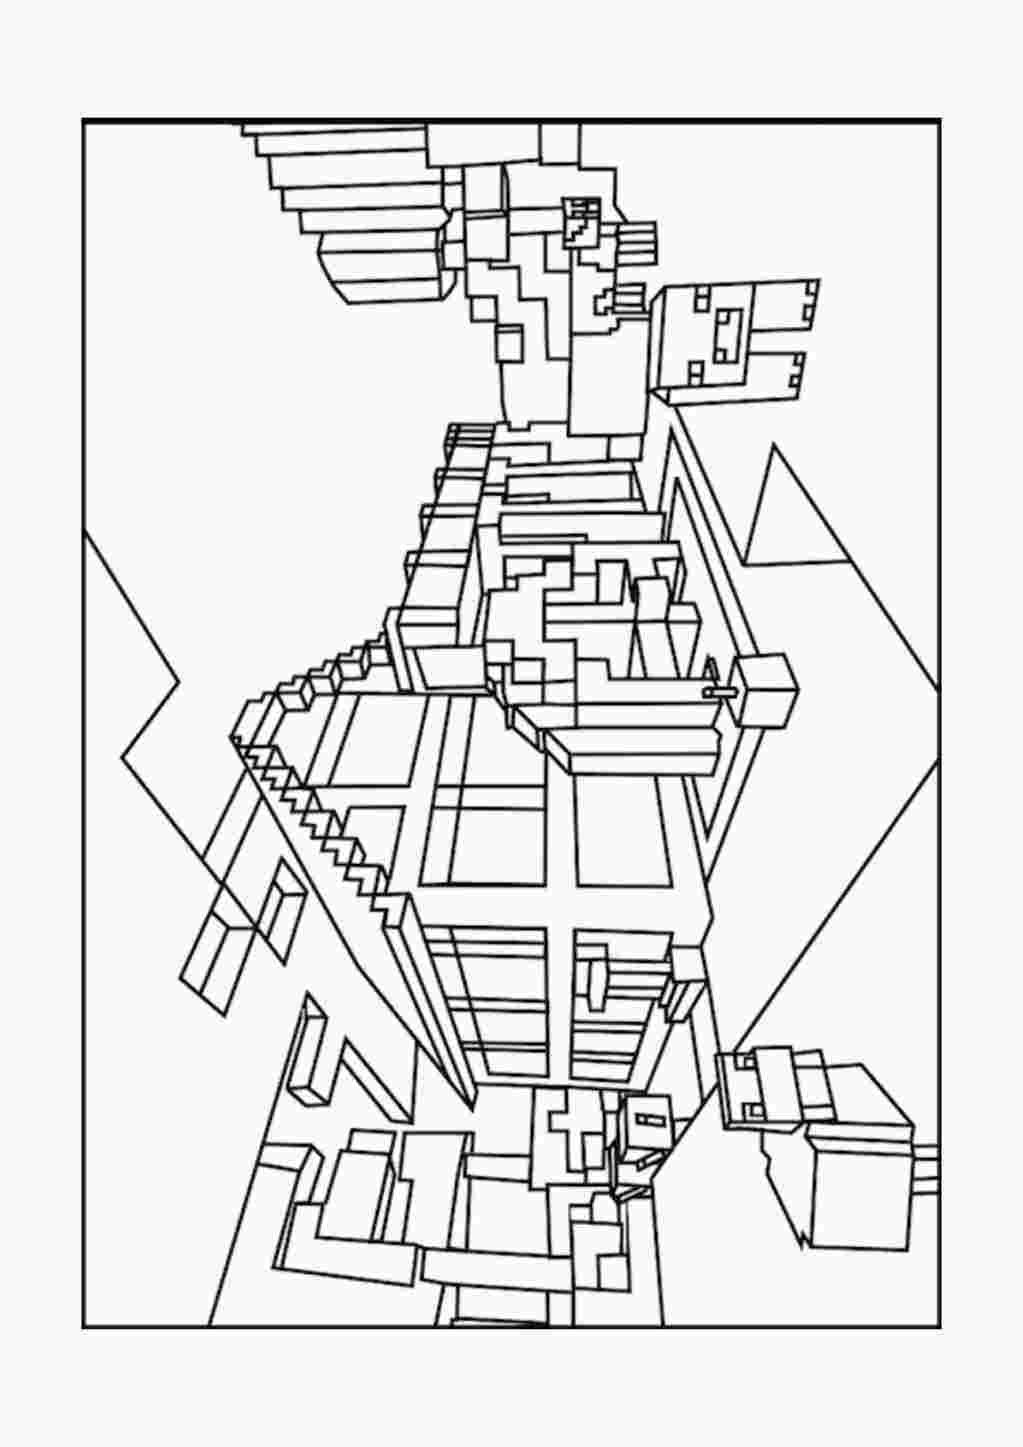 Wither Storm Coloring Pages Harleypoo2 Hikari Takeshita Deviantart Coloring Pages Stor In 2020 Halloween Coloring Pages Minecraft Coloring Pages Nick Jr Coloring Pages